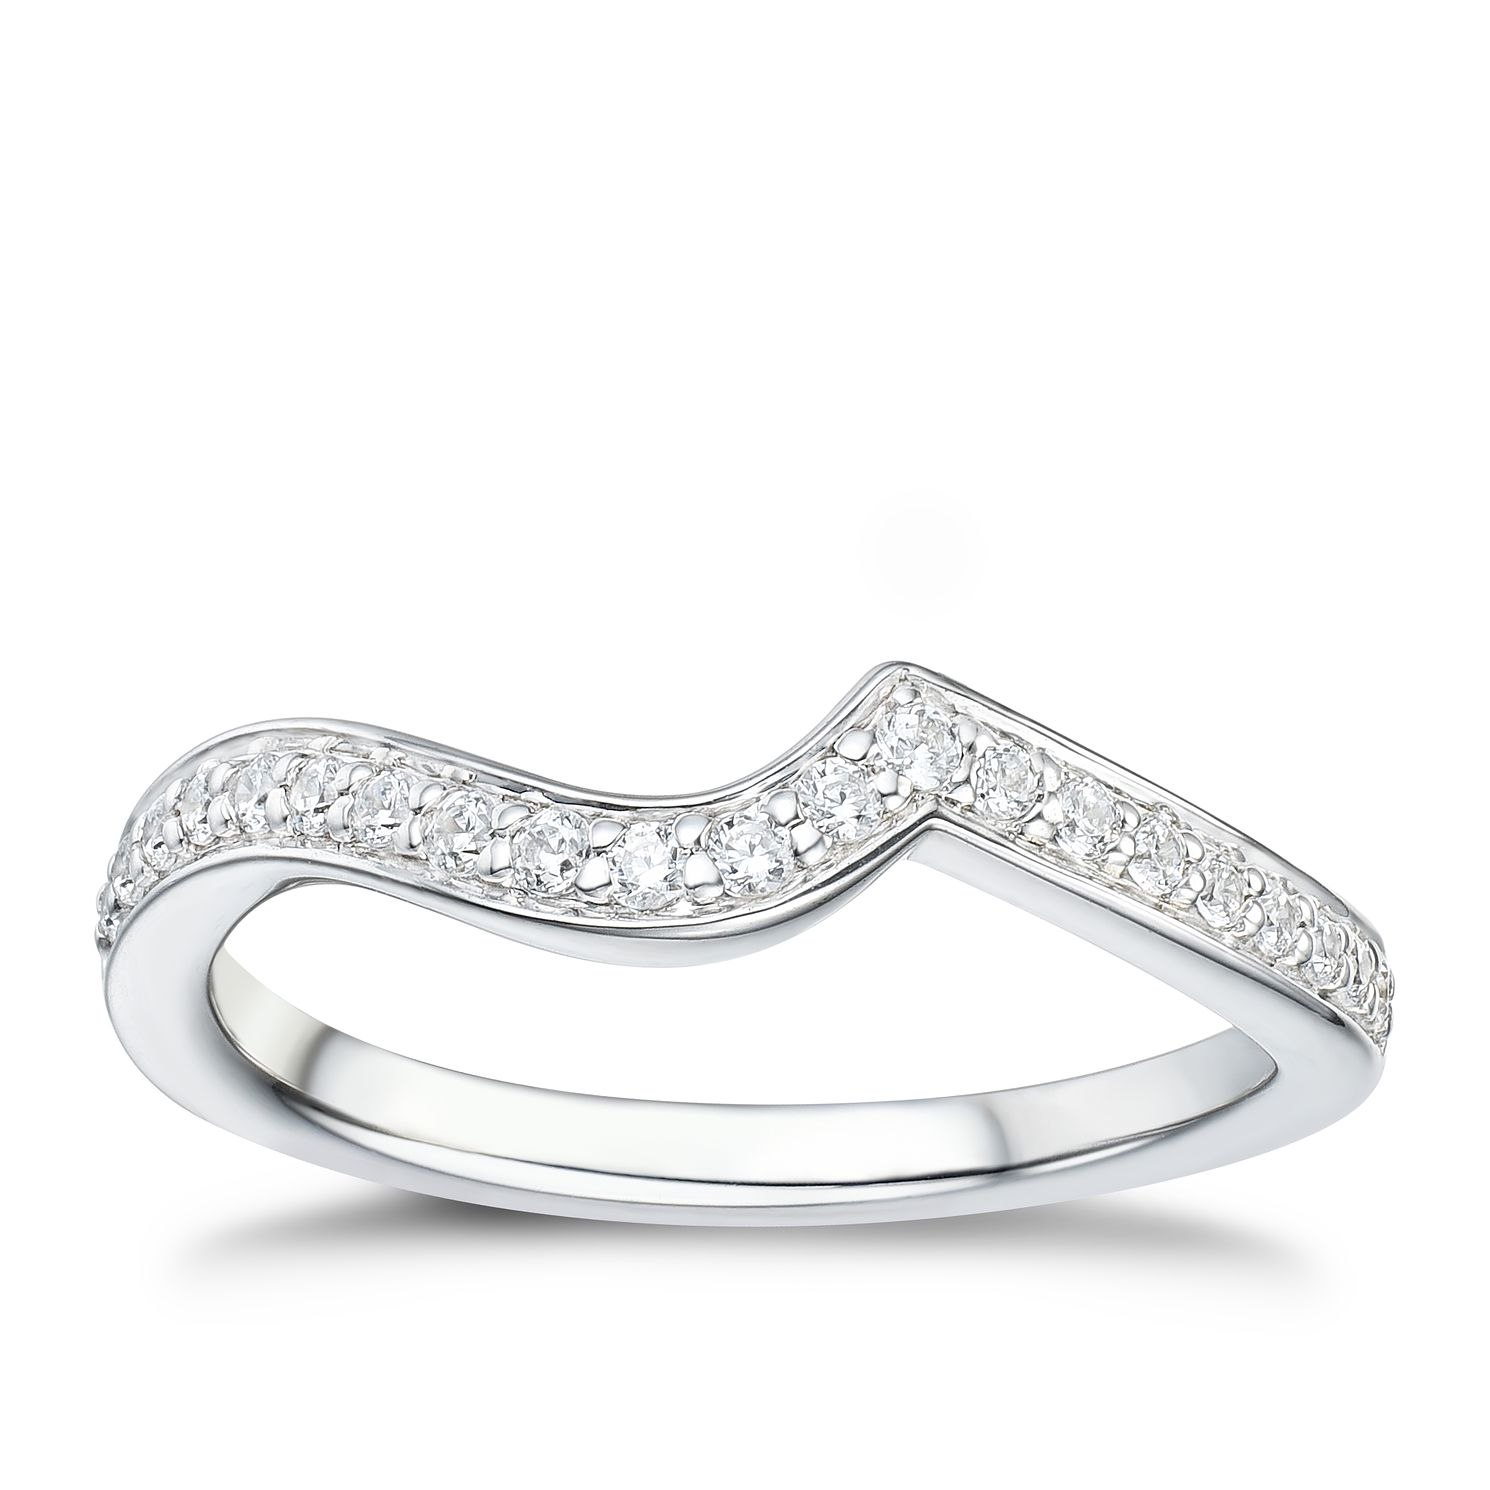 Tolkowsky 18ct White Gold 0.17ct Diamond Shaped Ring - Product number 2938197